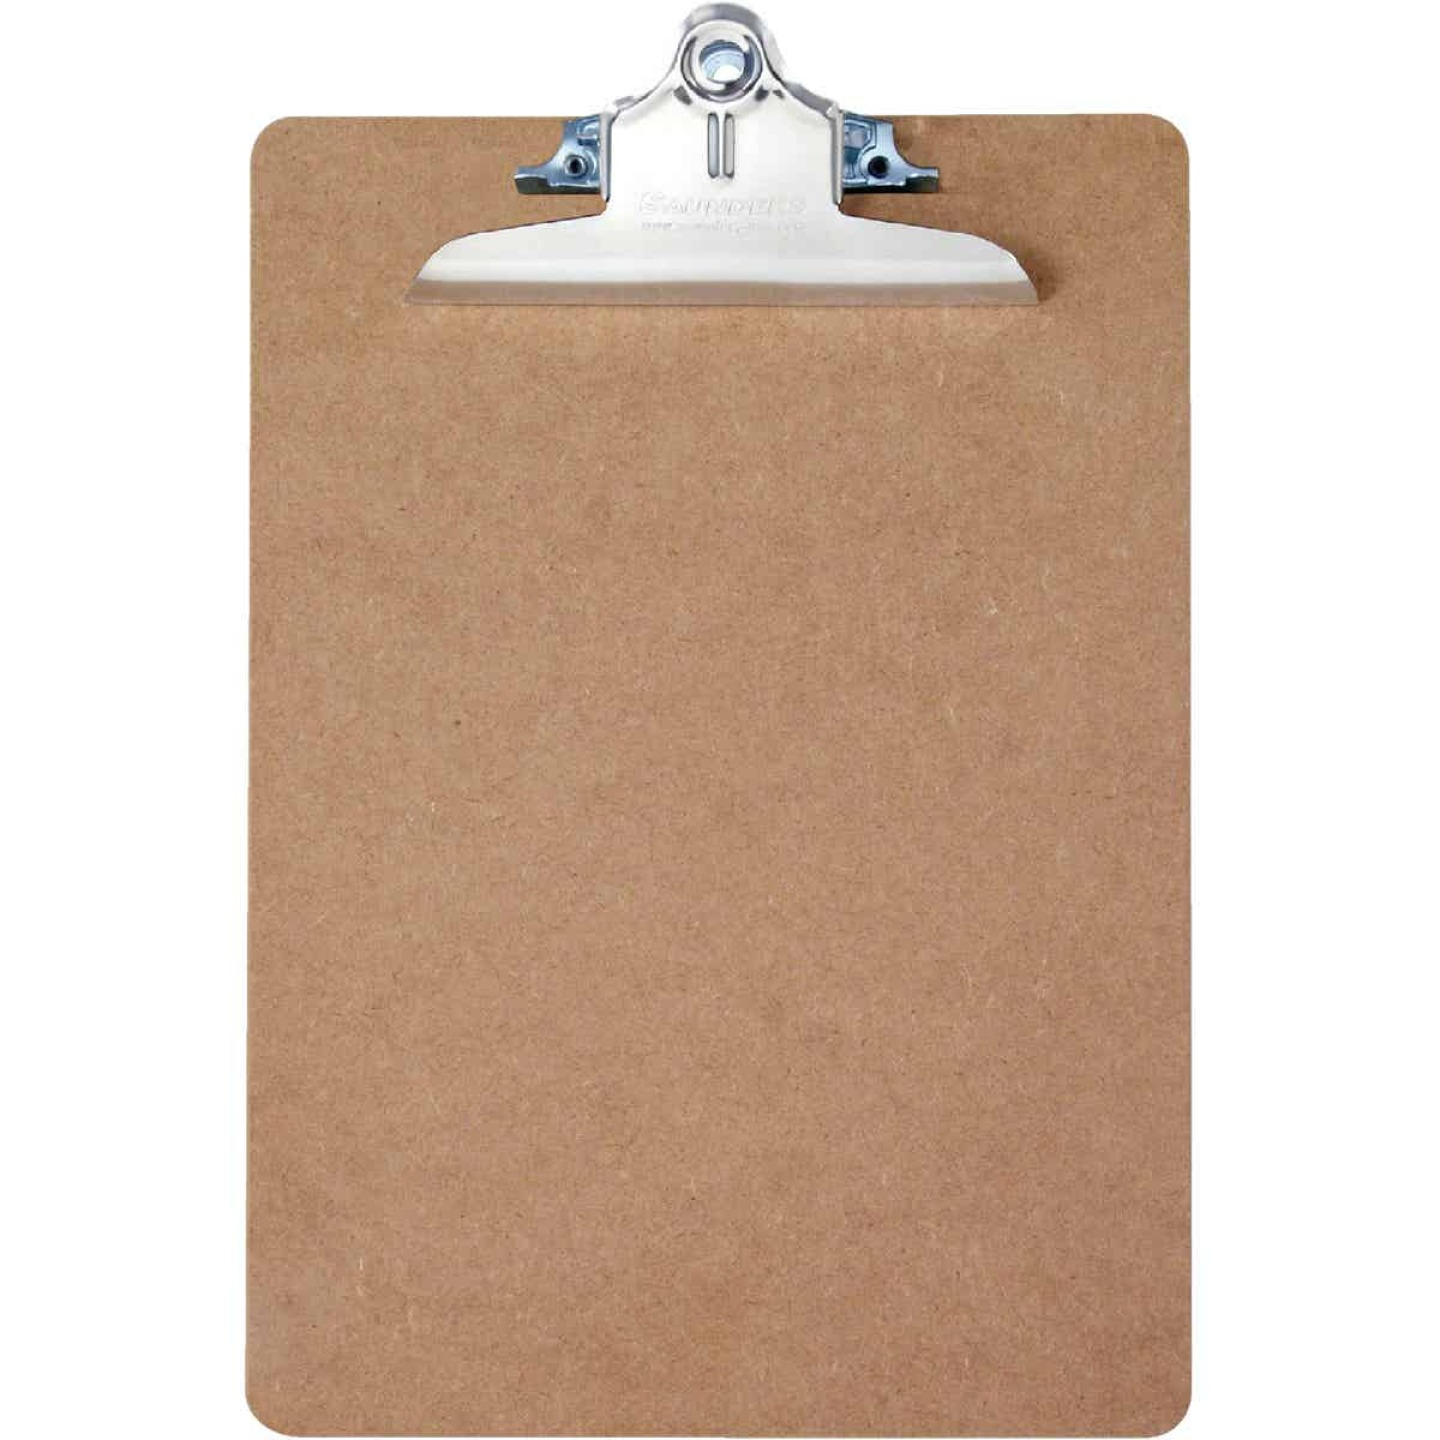 Saunders Letter Size 100% Recycled Hardboard 1 In. Clipboard Image 1